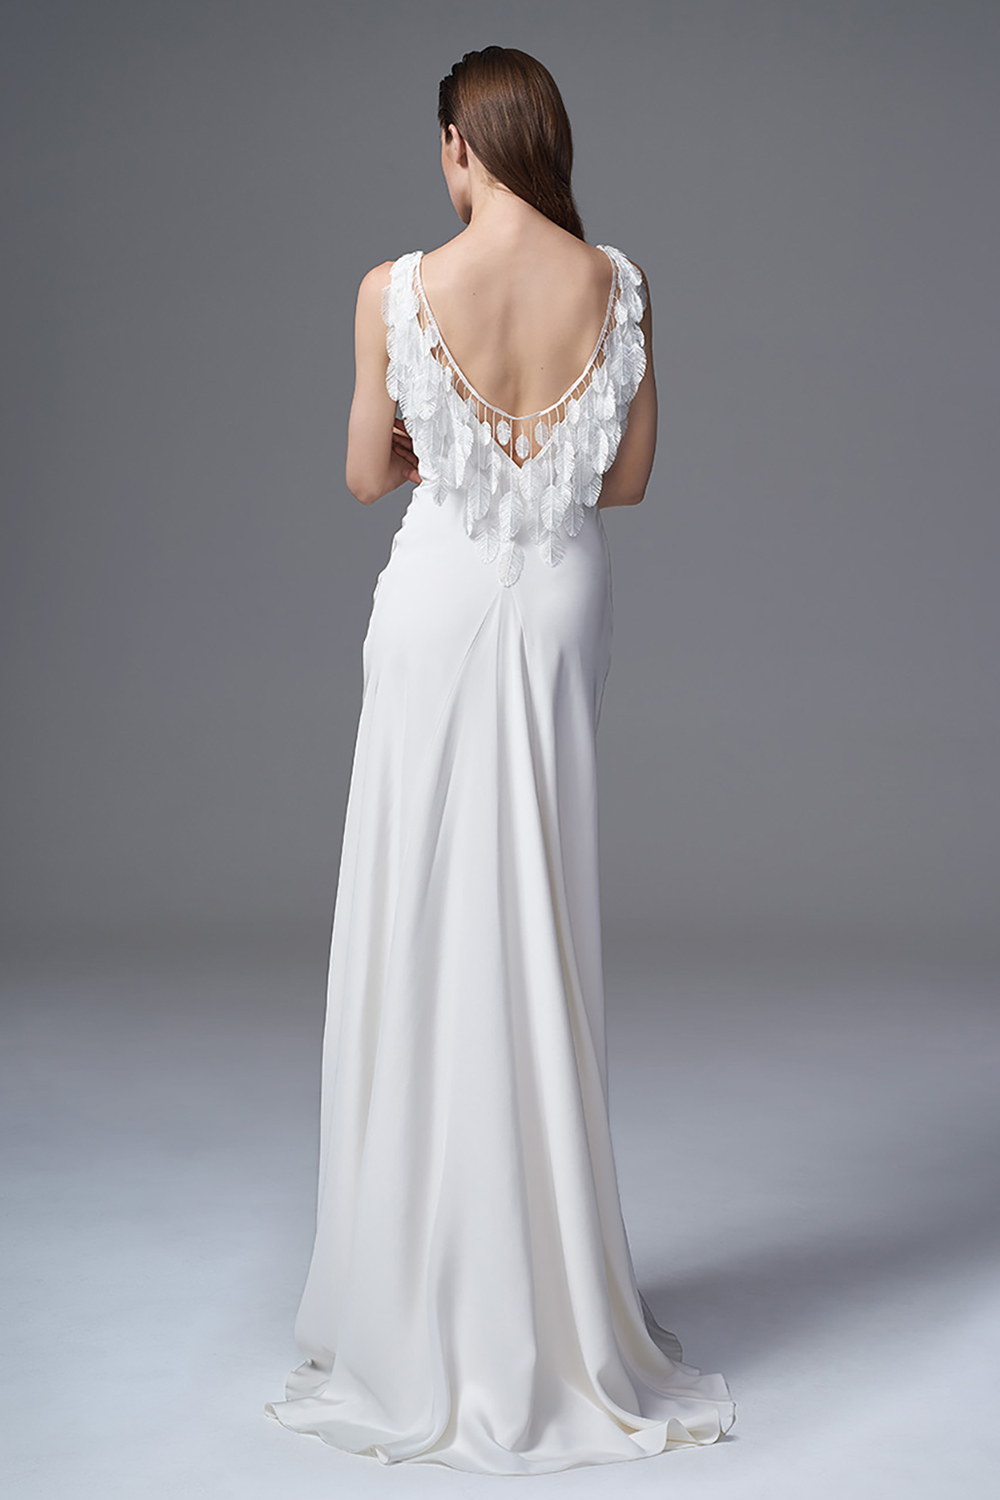 THE VERA SILK CREPE DRESS WITH FRENCH EMBROIDERED FEATHERS. BRIDAL WEDDING DRESS BY HALFPENNY LONDON